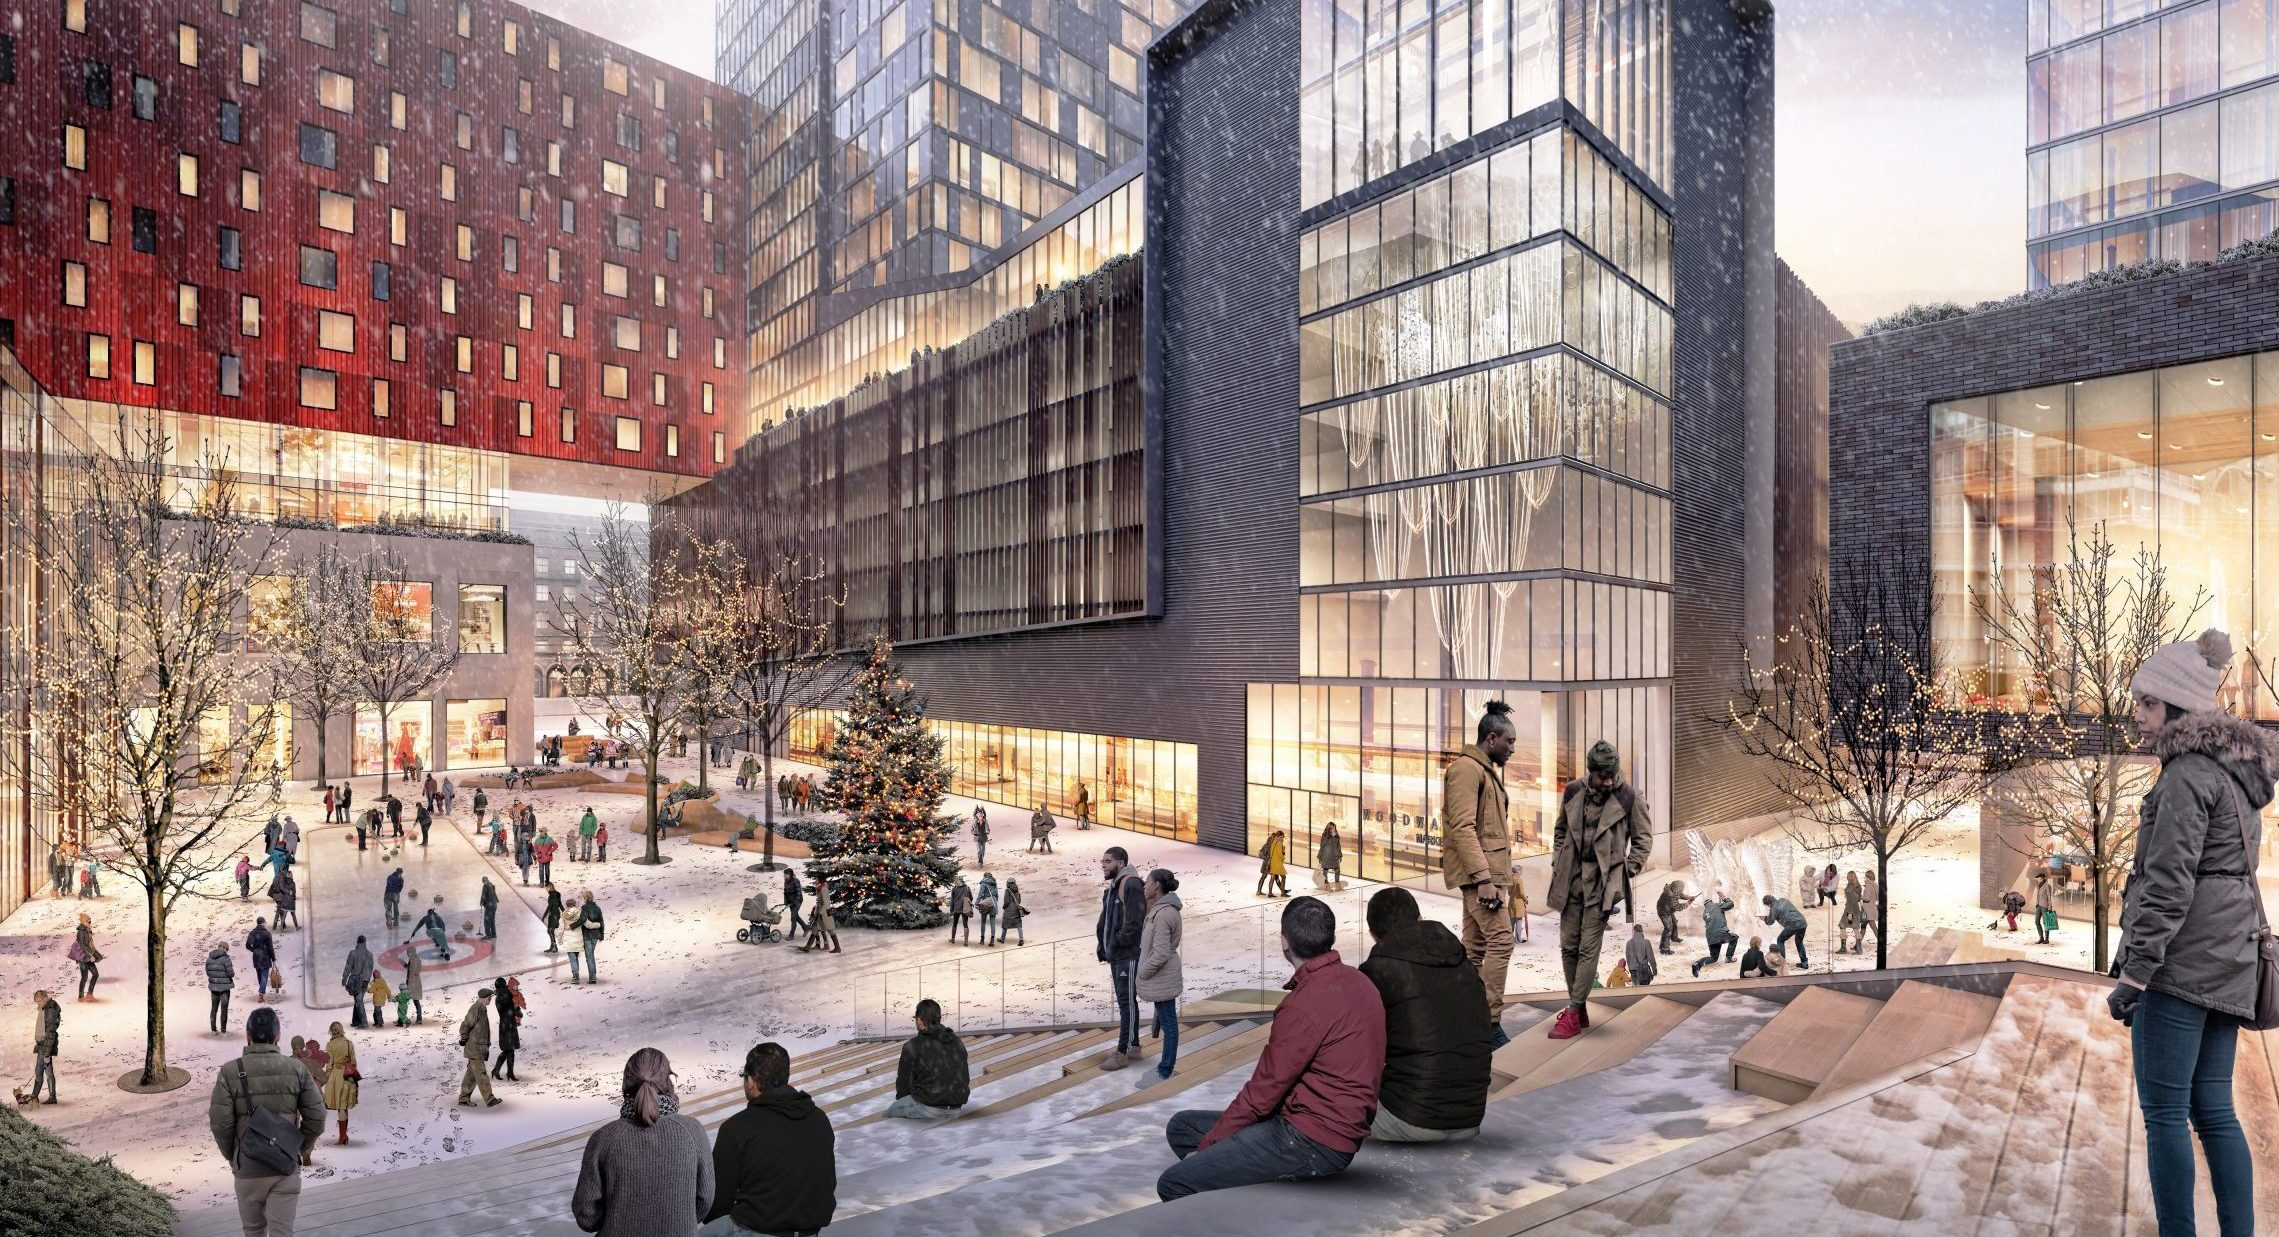 Rendering of people in public plaza in winter at the Mid Mixed-Use Development Project in Detroit Michigan Architecture and Urban Design